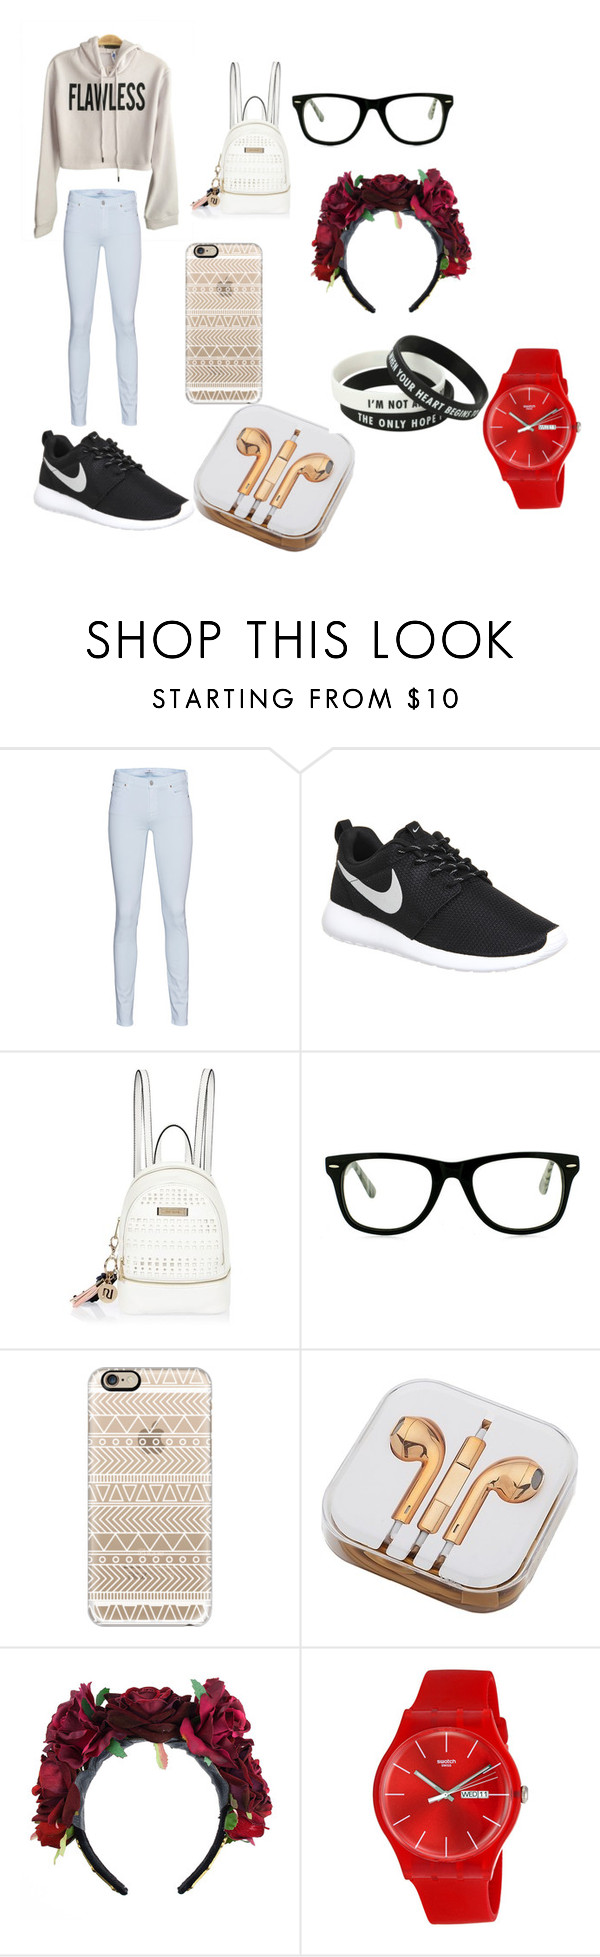 """""""i dont think your ready"""" by alexiscmcdougald ❤ liked on Polyvore featuring 7 For All Mankind, NIKE, River Island, Muse, Casetify, PhunkeeTree and Swatch"""